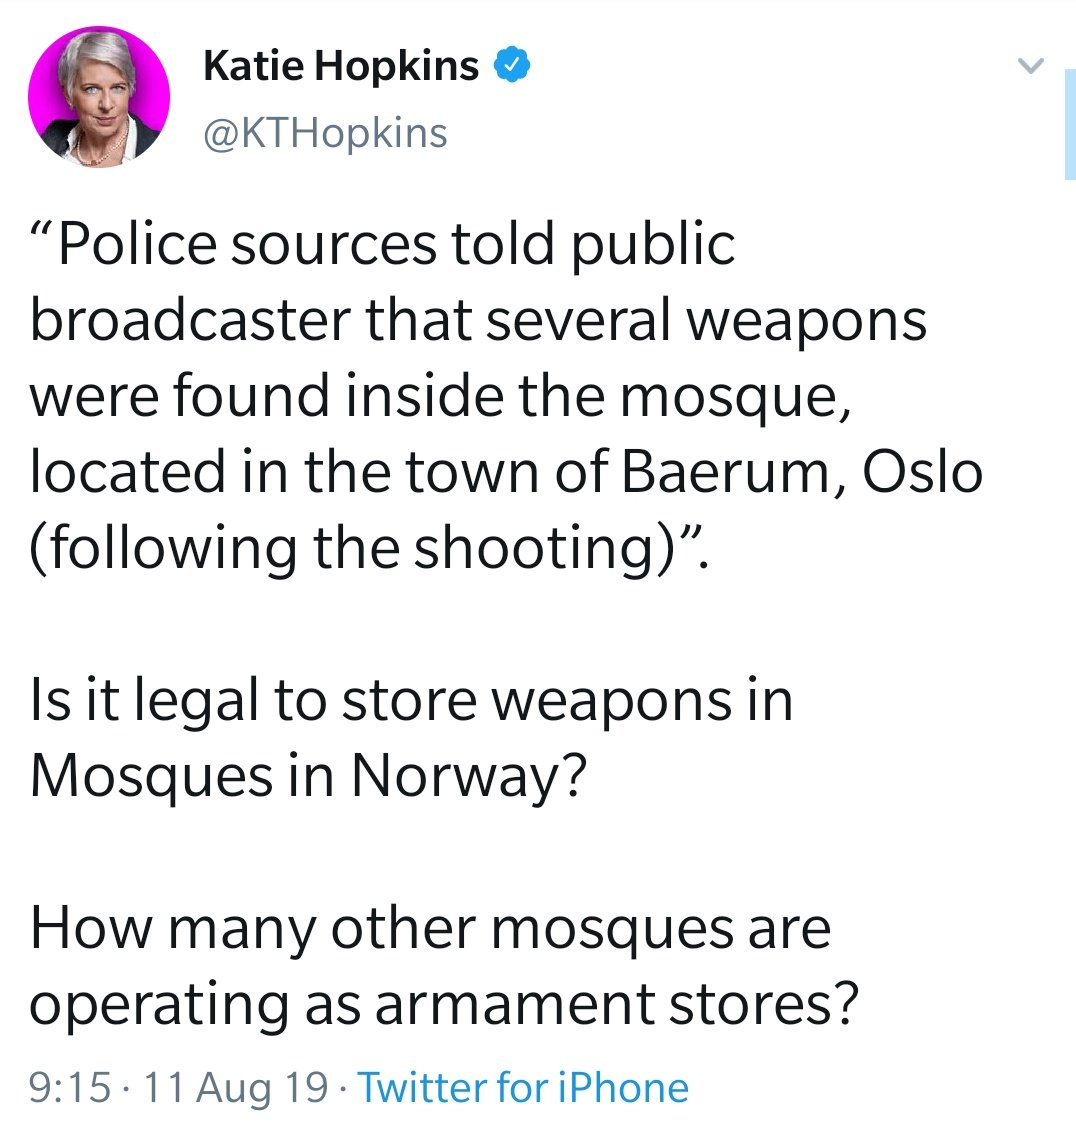 A man is suspected of opening fire at a mosque in Oslo. Multiple weapons were found inside the mosque which are believed to be connected to the suspect. This is what @KTHopkins tweets. Nothing more than an attempt to whip up hatred. This is beyond post-truth politics.